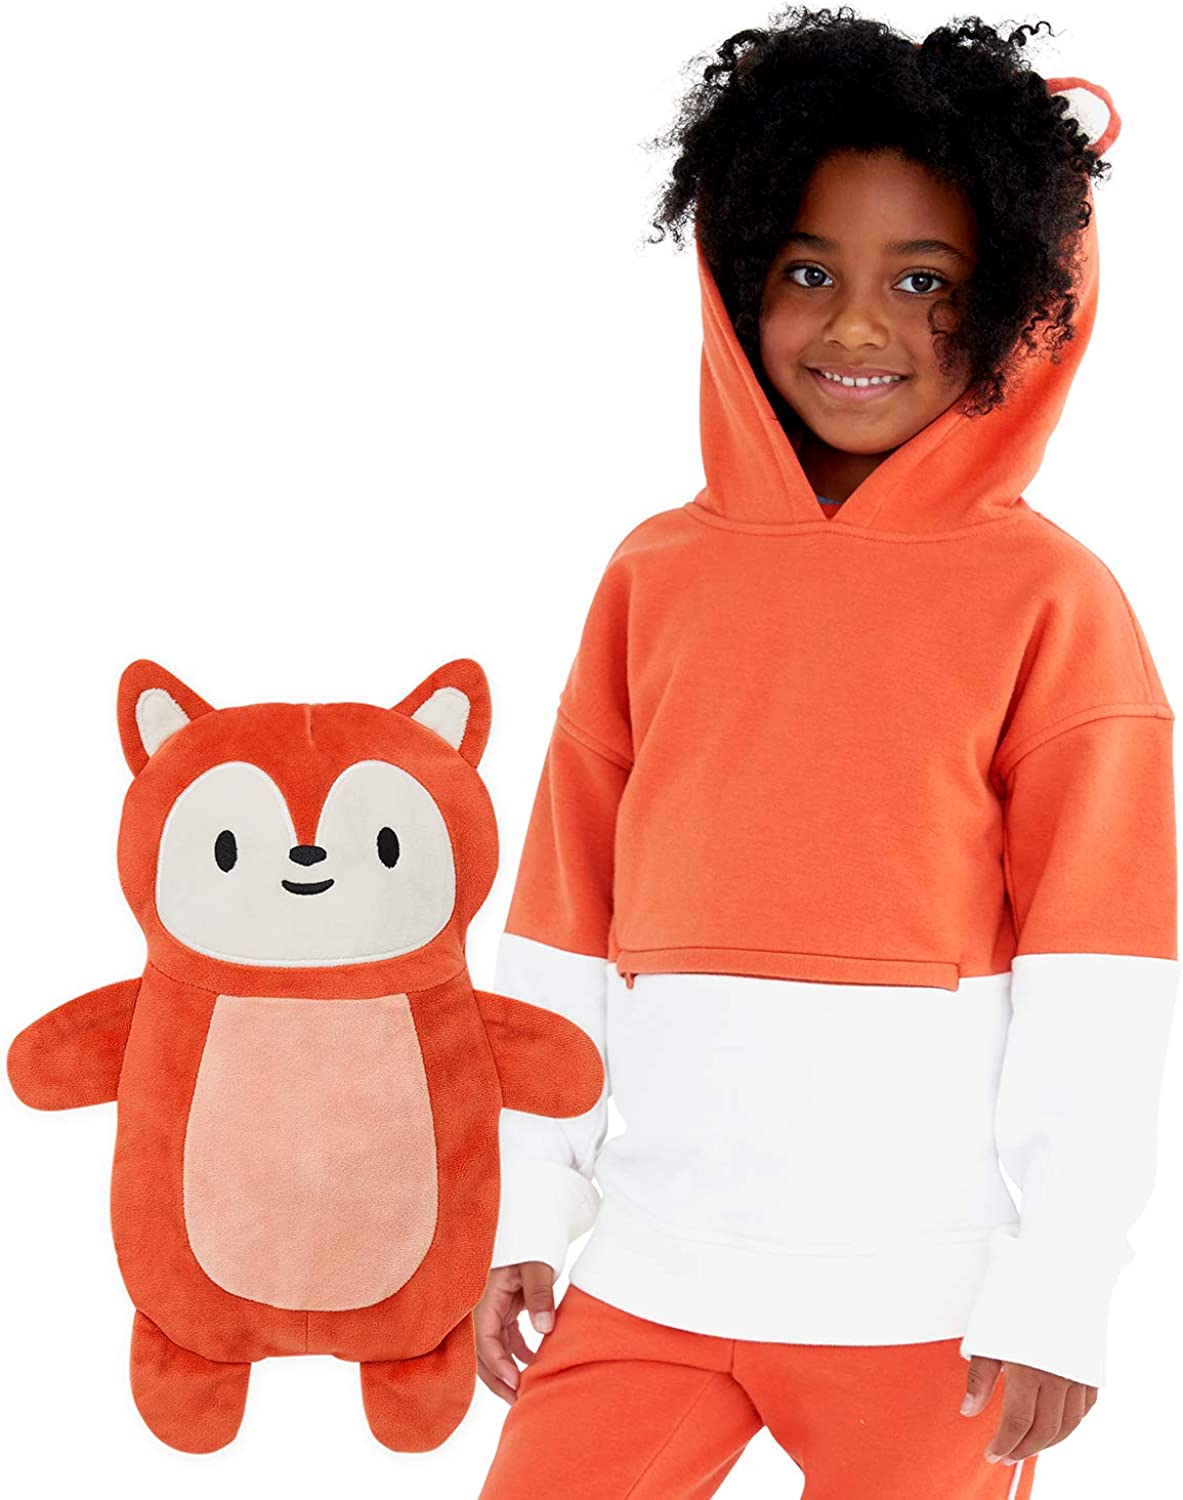 Cubcoats Kids Transforming 2 in 1 Pullover Sweatshirt with Hood and Convertible Soft Character Plushie